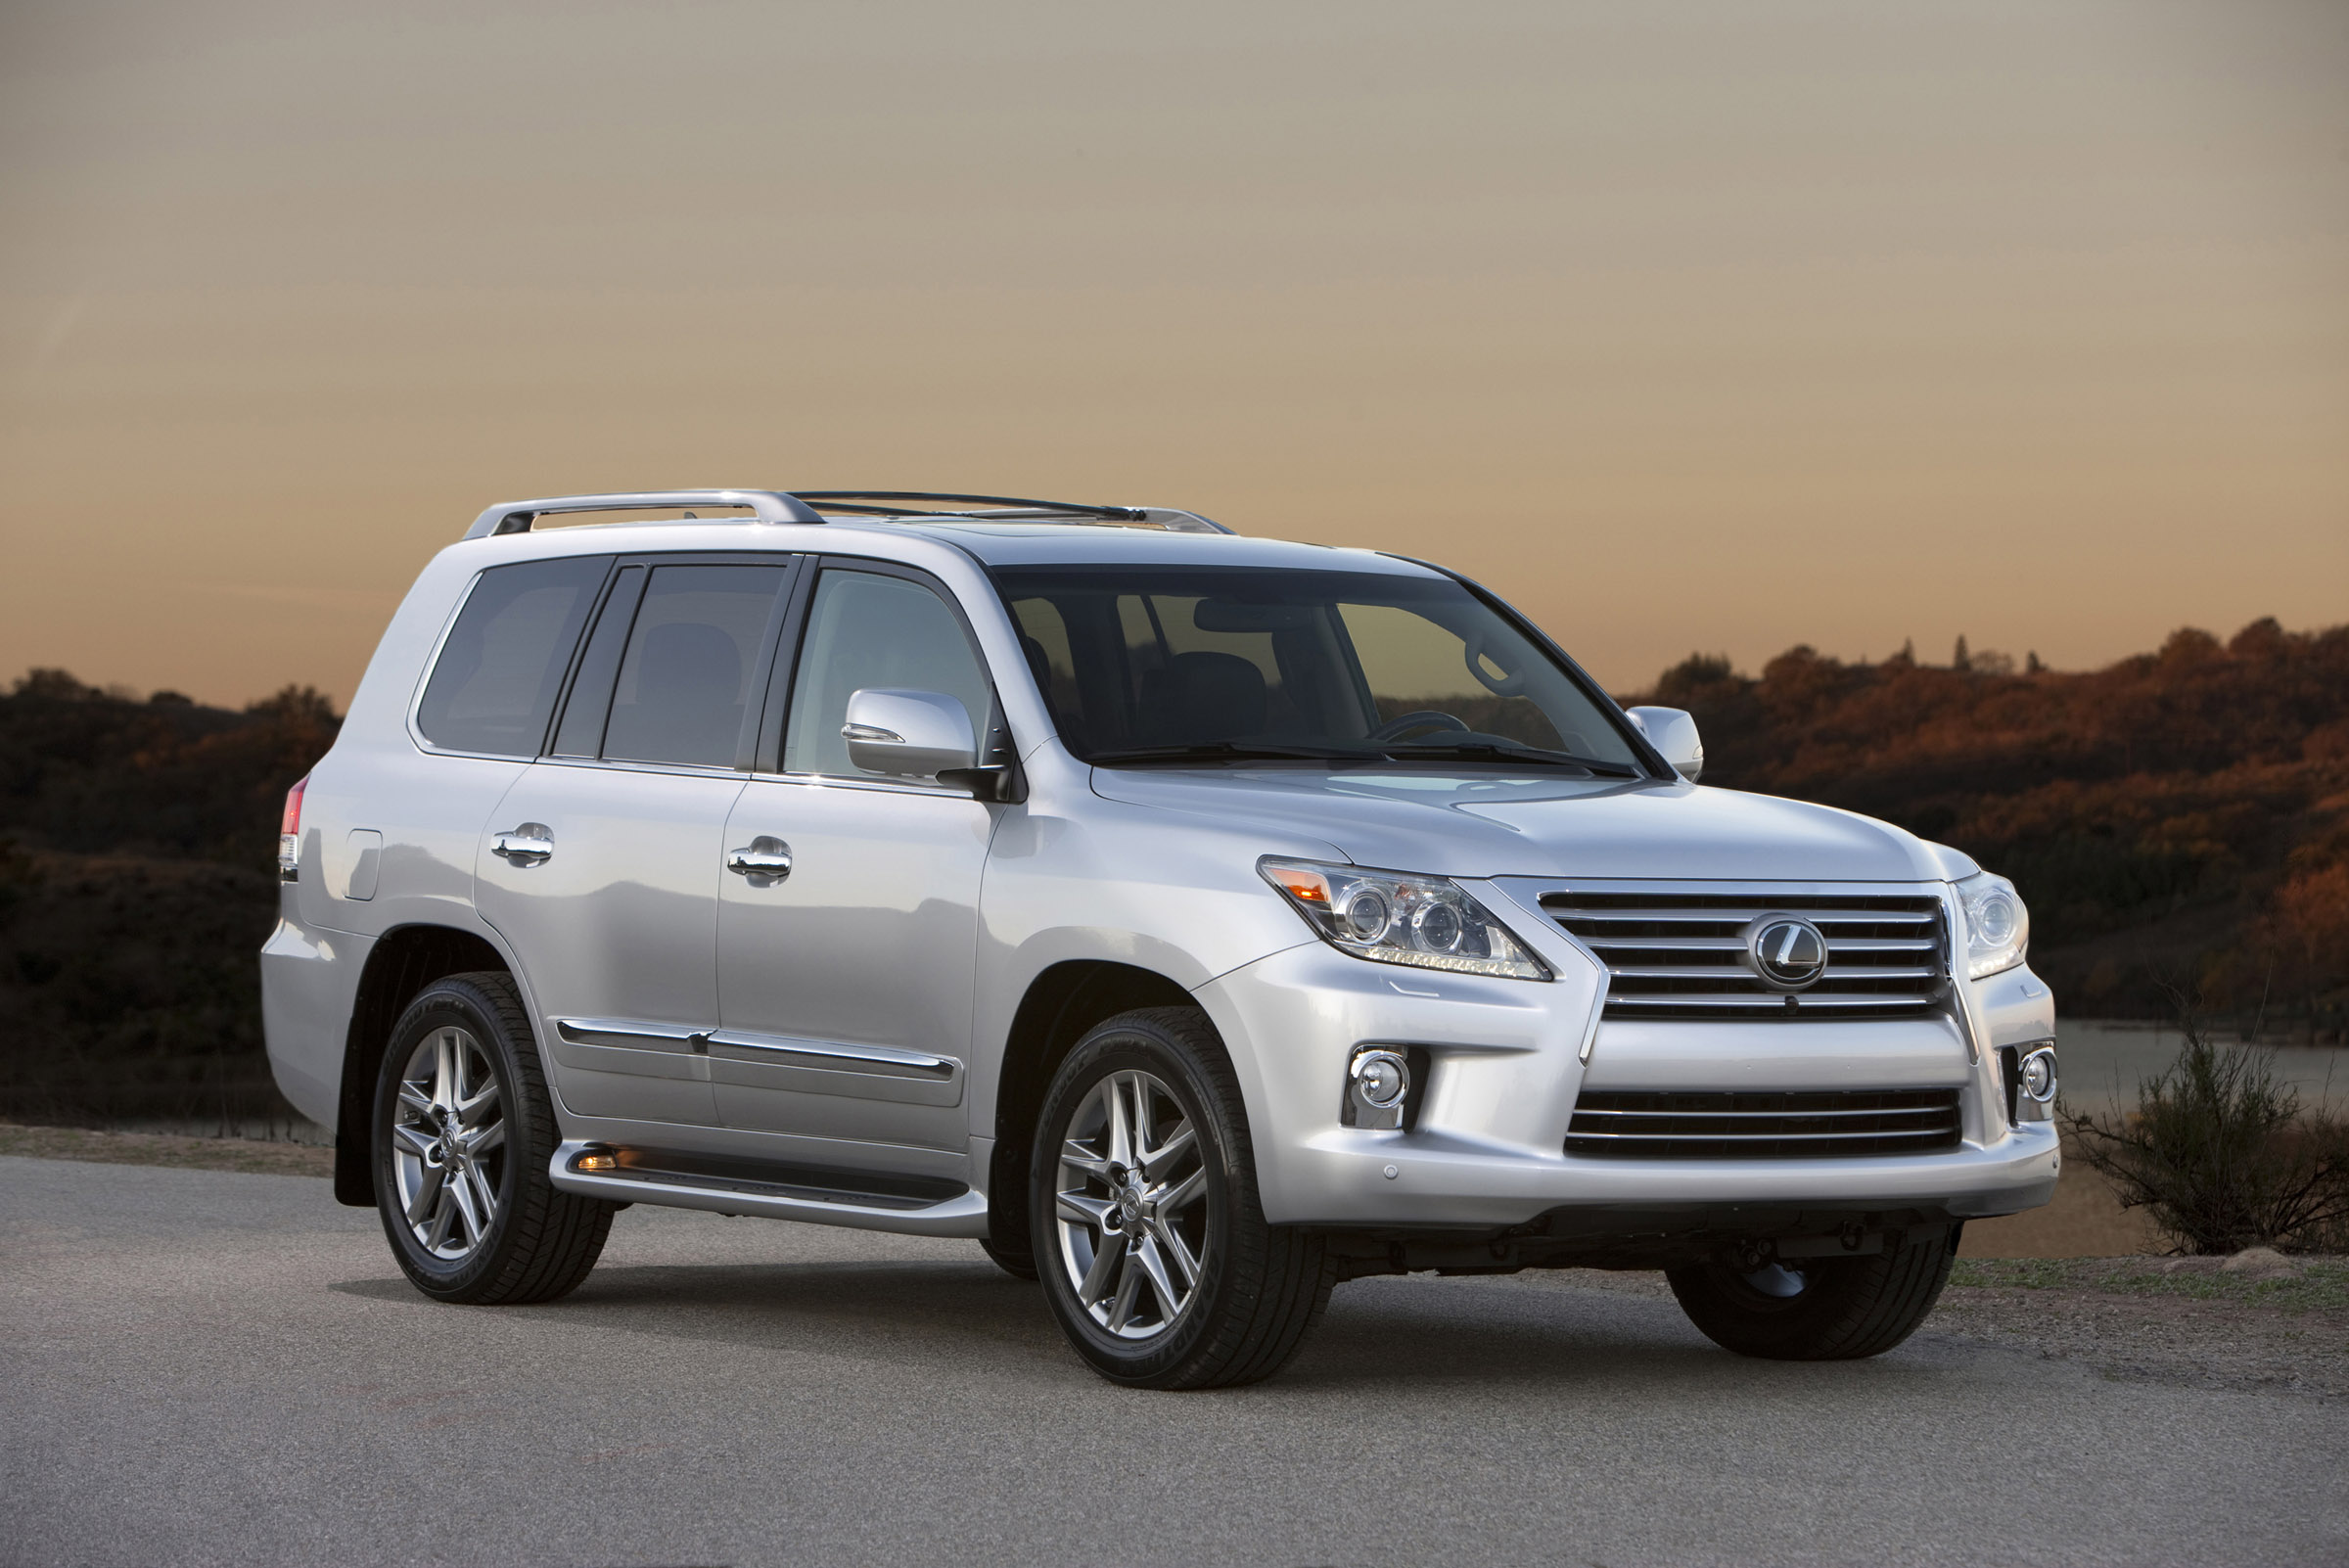 Lexus Lx 570 >> 2013 Lexus LX 570 SUV With New Look